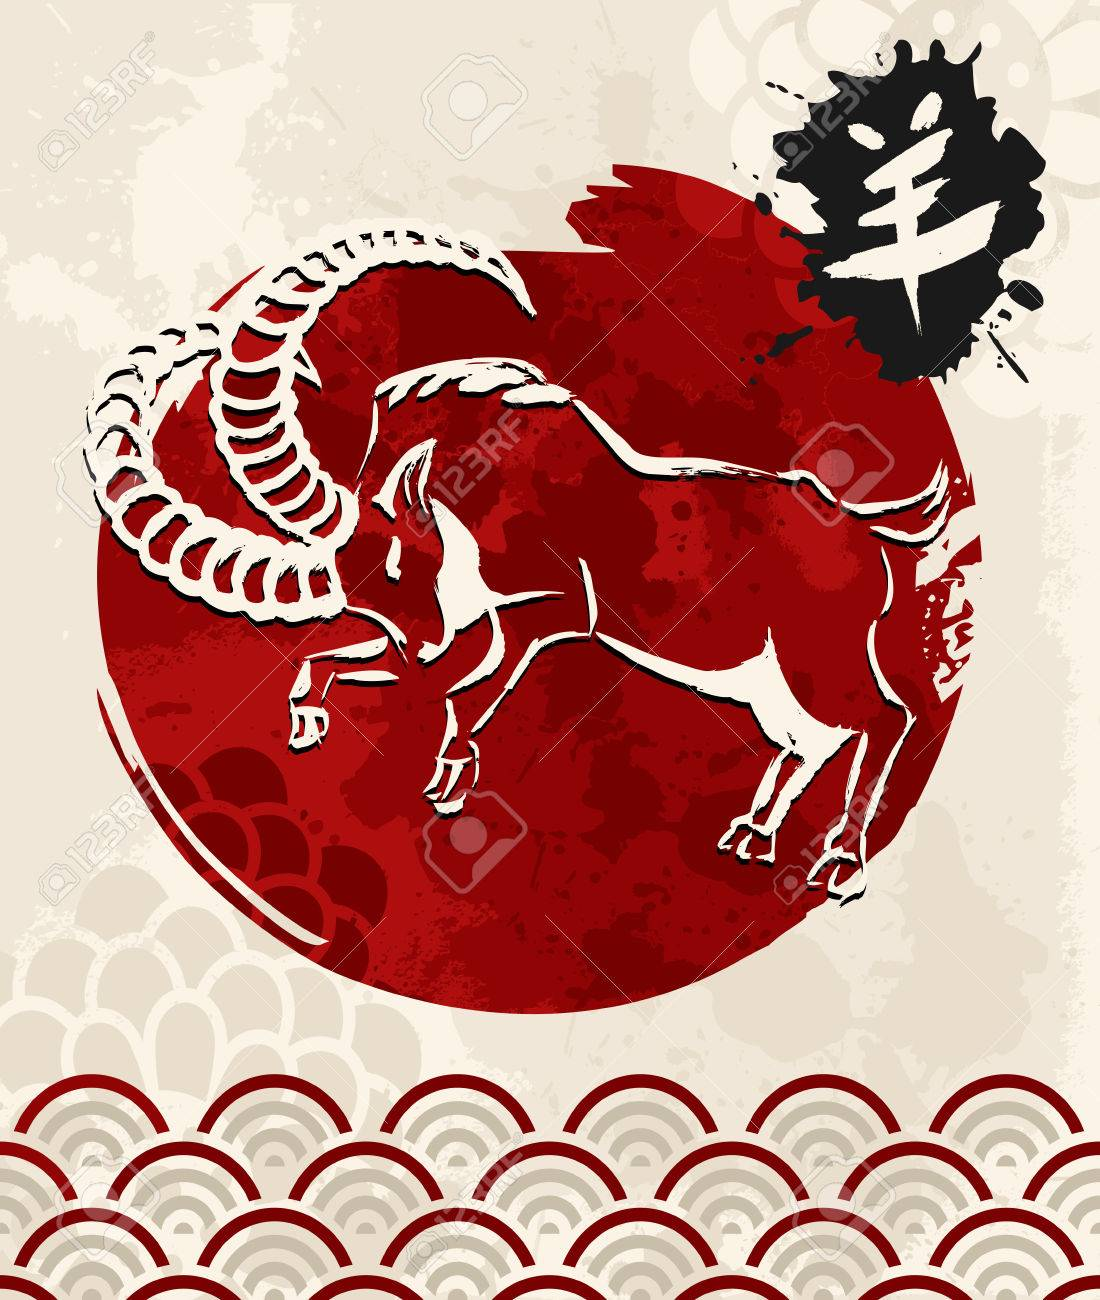 2015 new year of the goat chinese calligraphy and hand drawn animal composition stock vector - Chinese New Year 2015 Animal